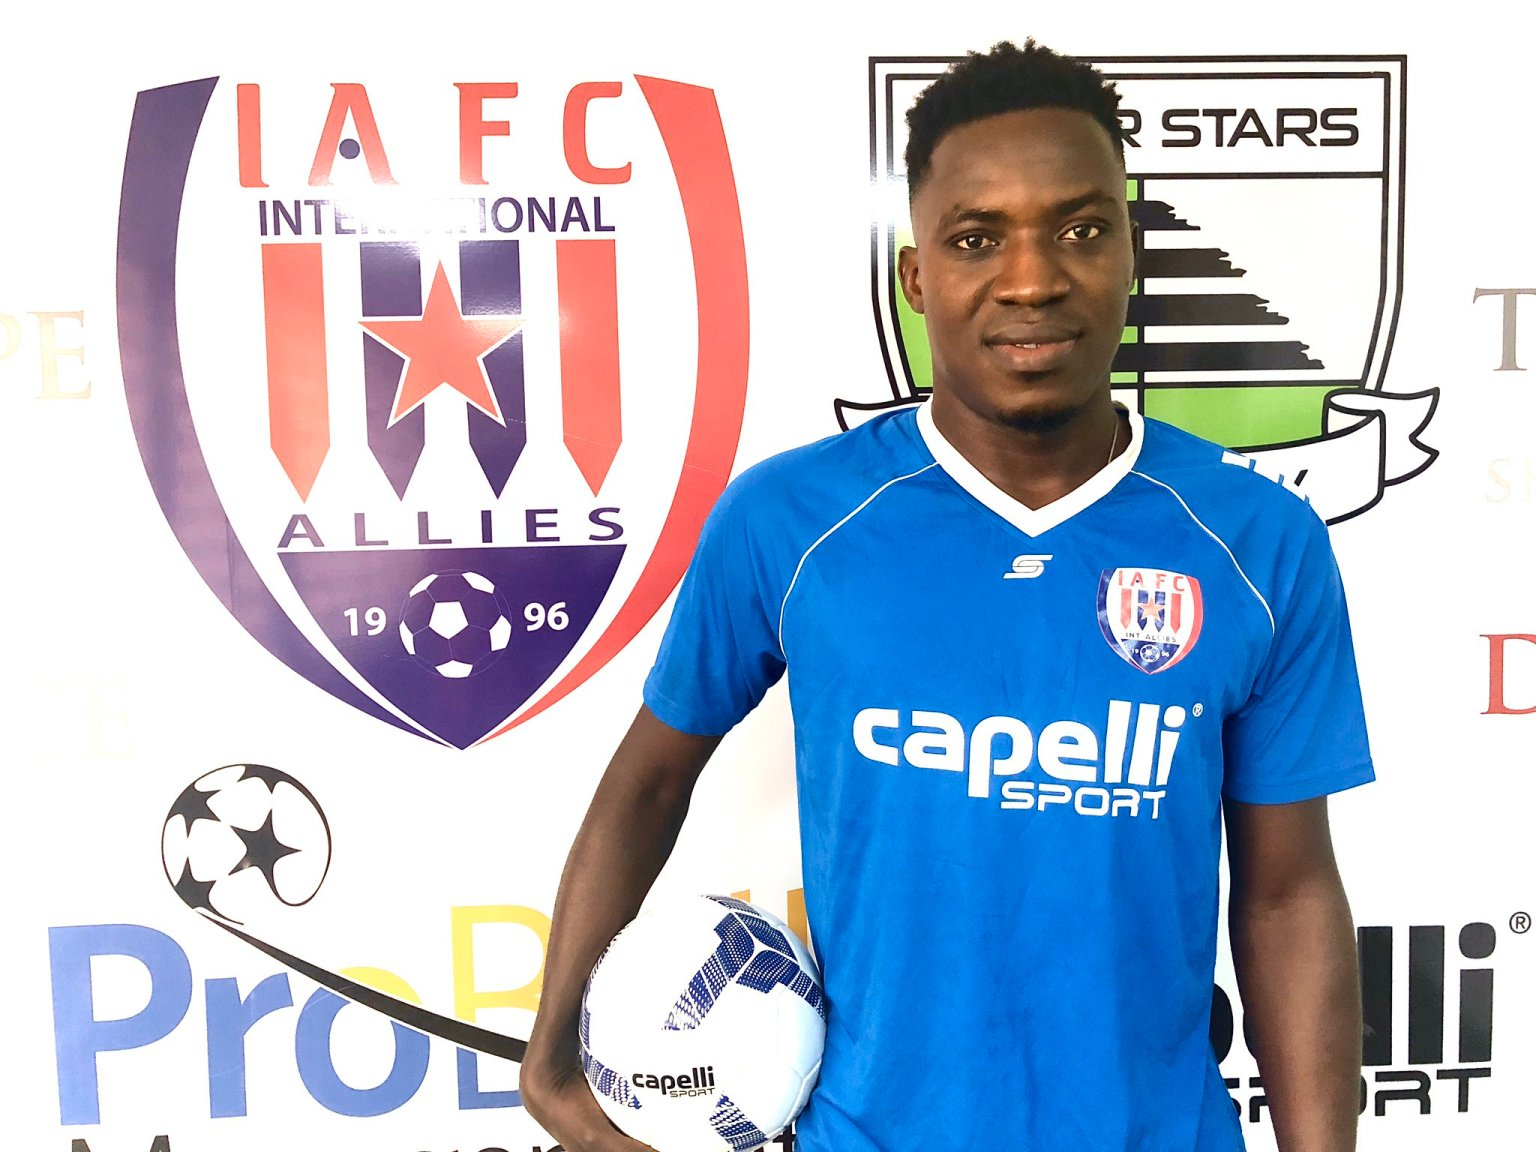 Inter Allies re-sign top midfielder Gockel Ahortor